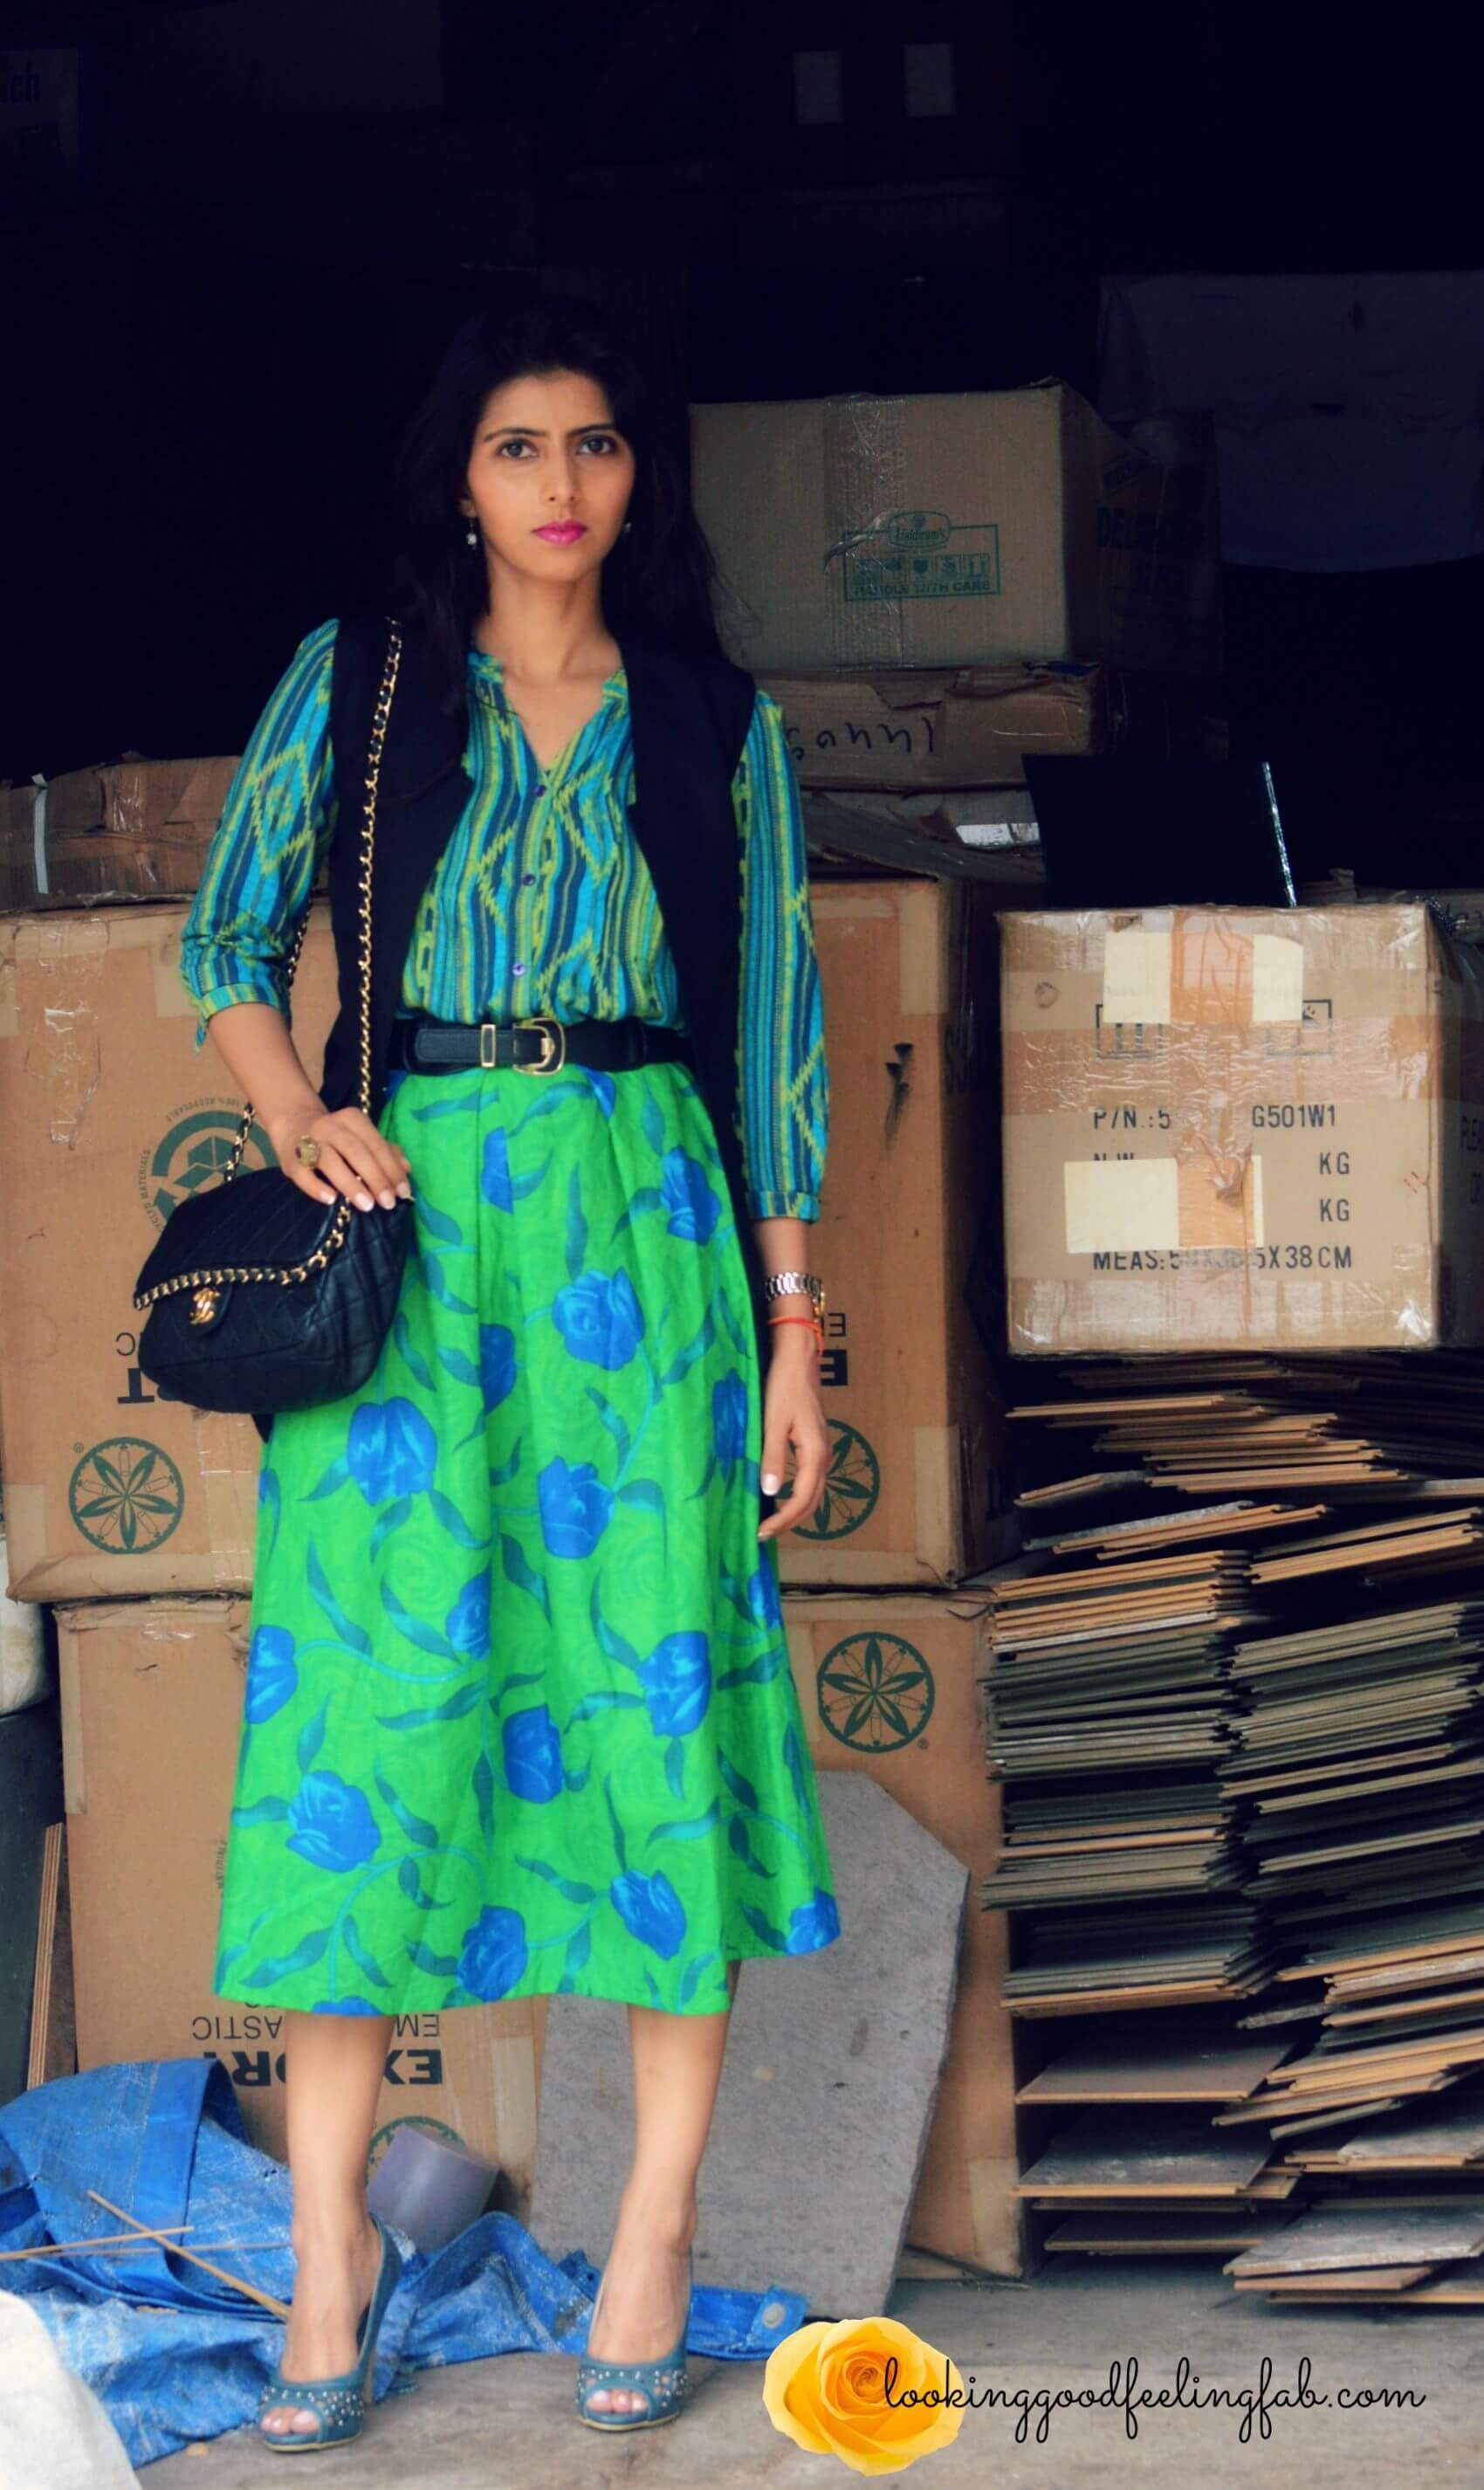 The Best 10 Indian Fashion Bloggers You Need To Keep An